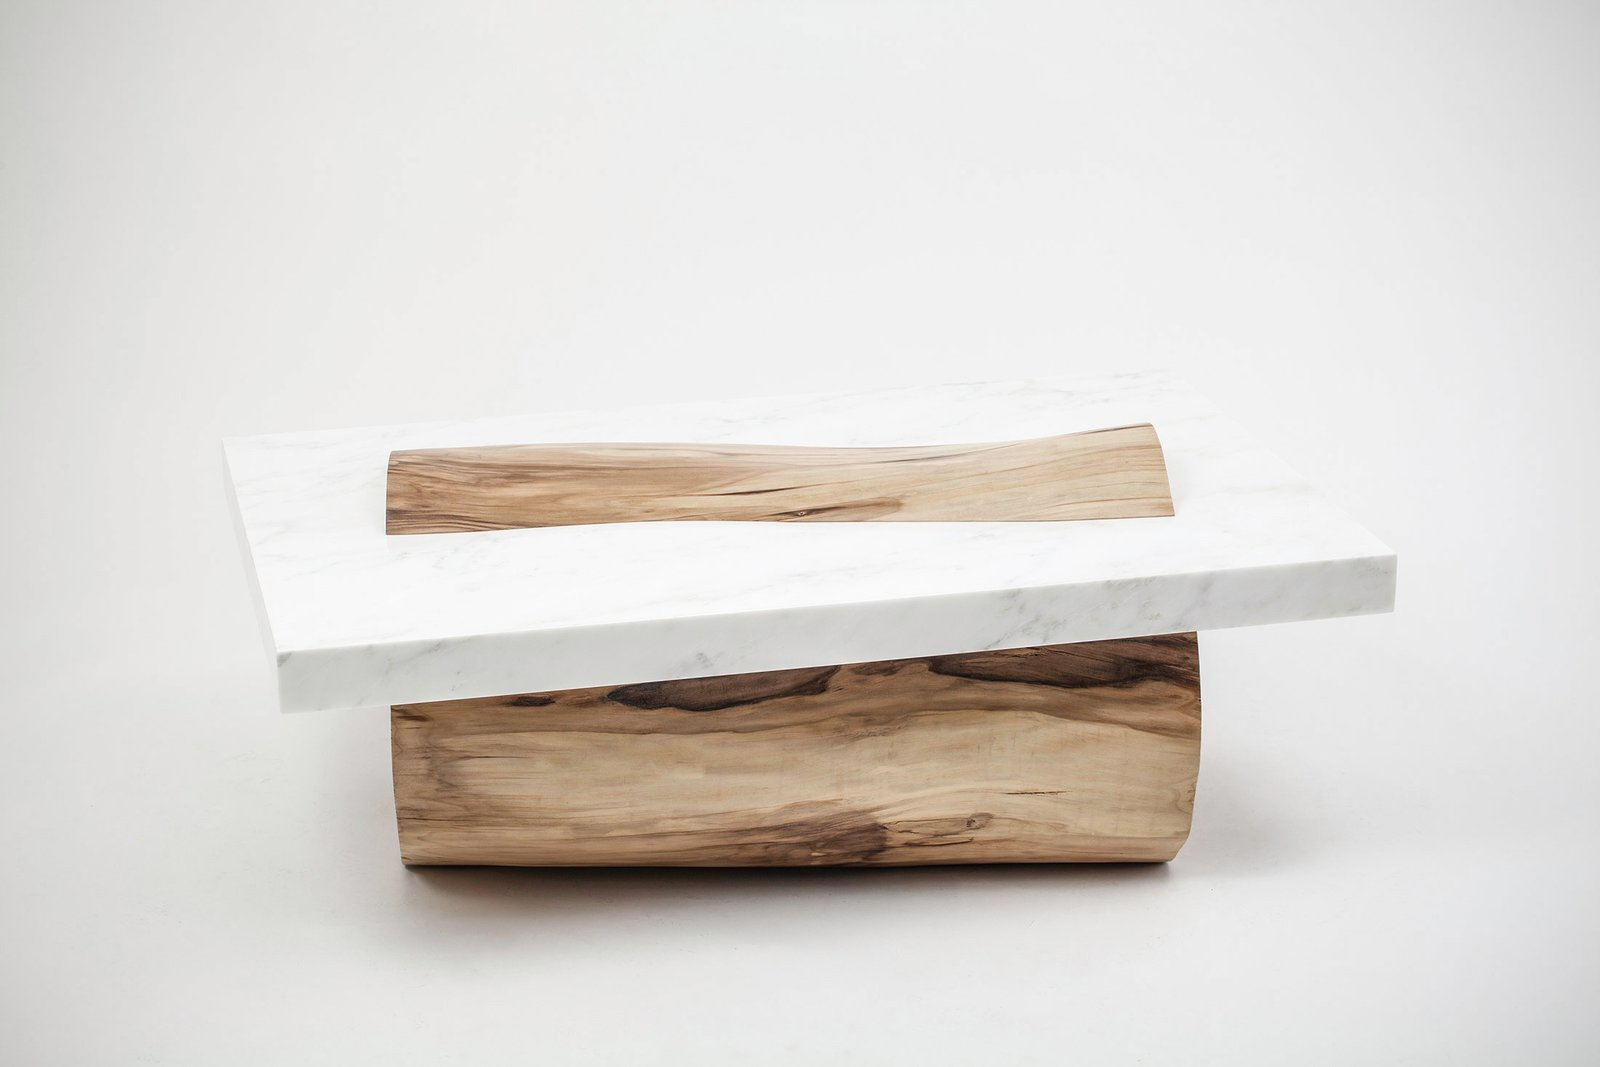 Sculptural Coffee Table By Marc Englander  Modern Rustic by Gessato